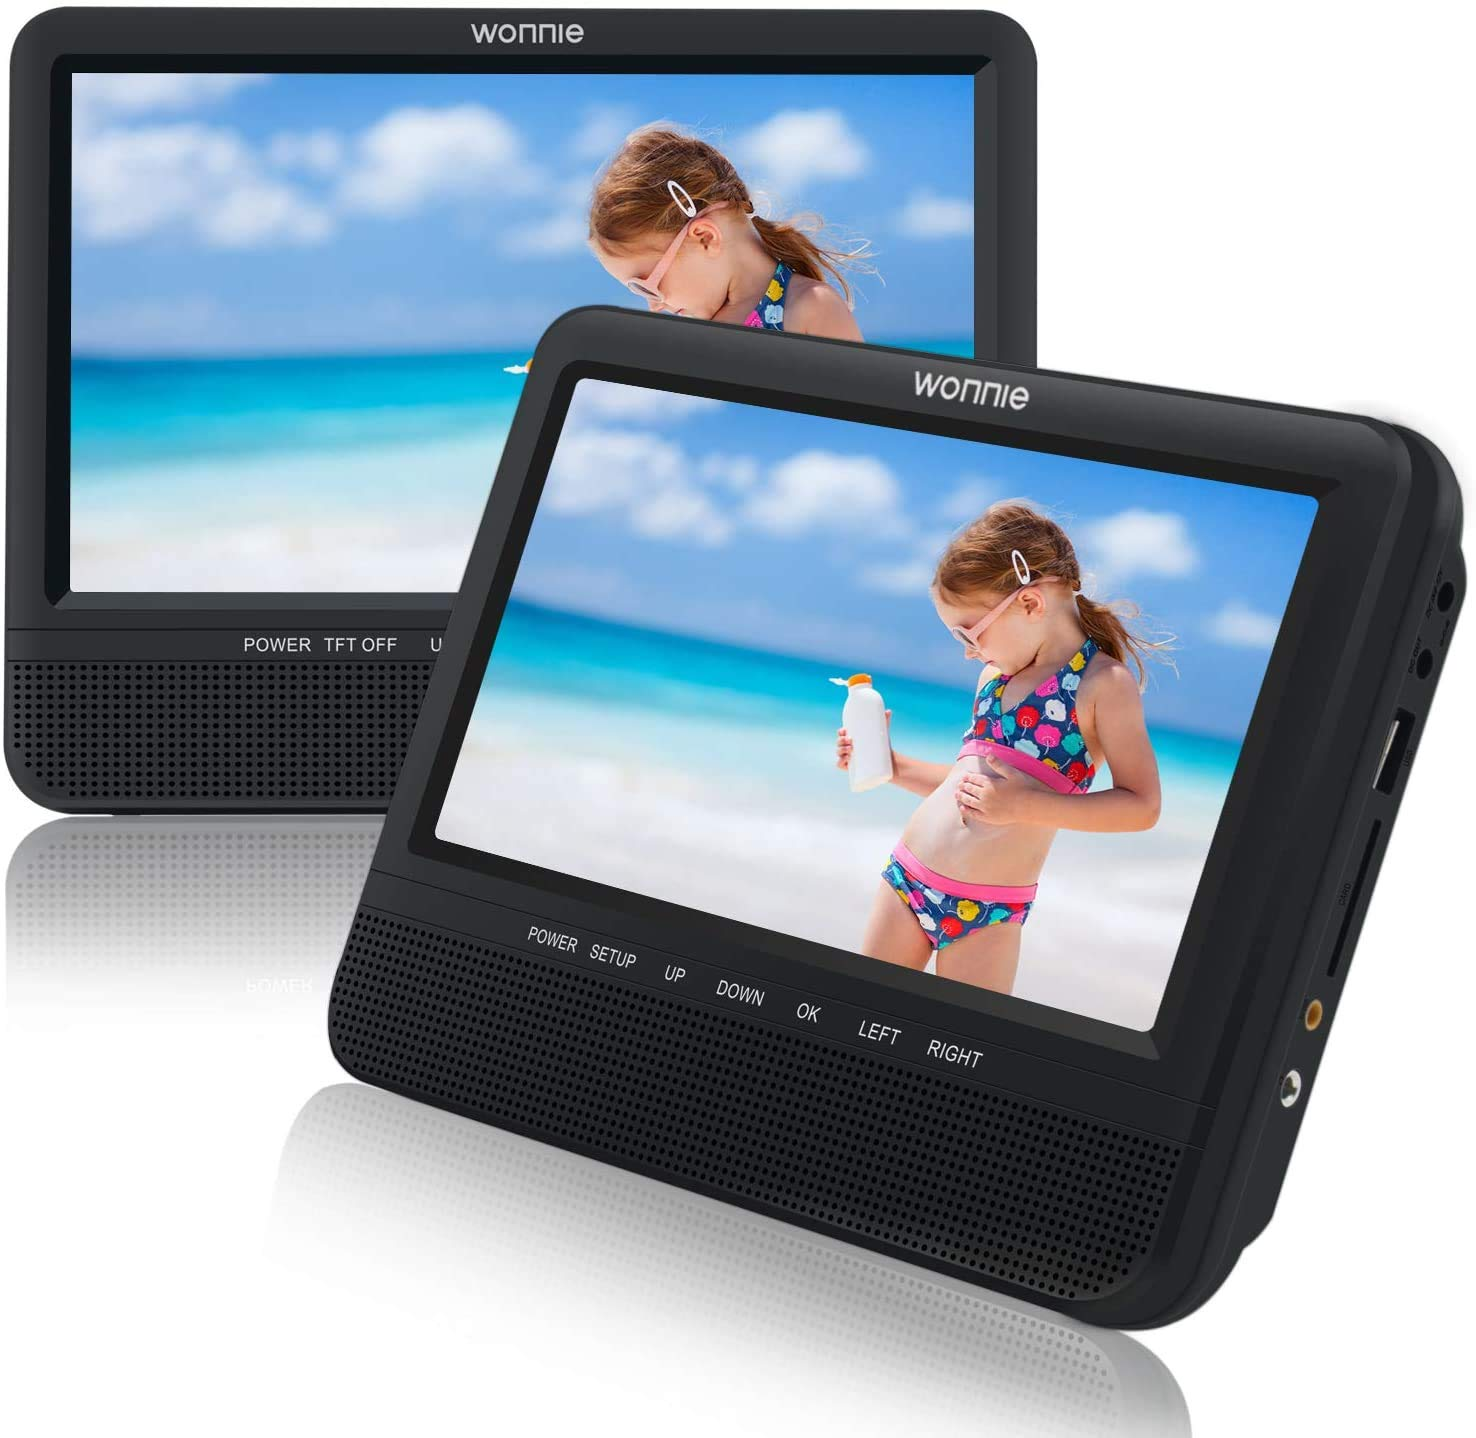 WONNIE 7.5'' Dual Screen DVD Player Portable Car Headrest Video Built-in 5 Hours Rechargeable Battery, Last Memory, Regions Free (Host DVD Player+ Slave Monitor)